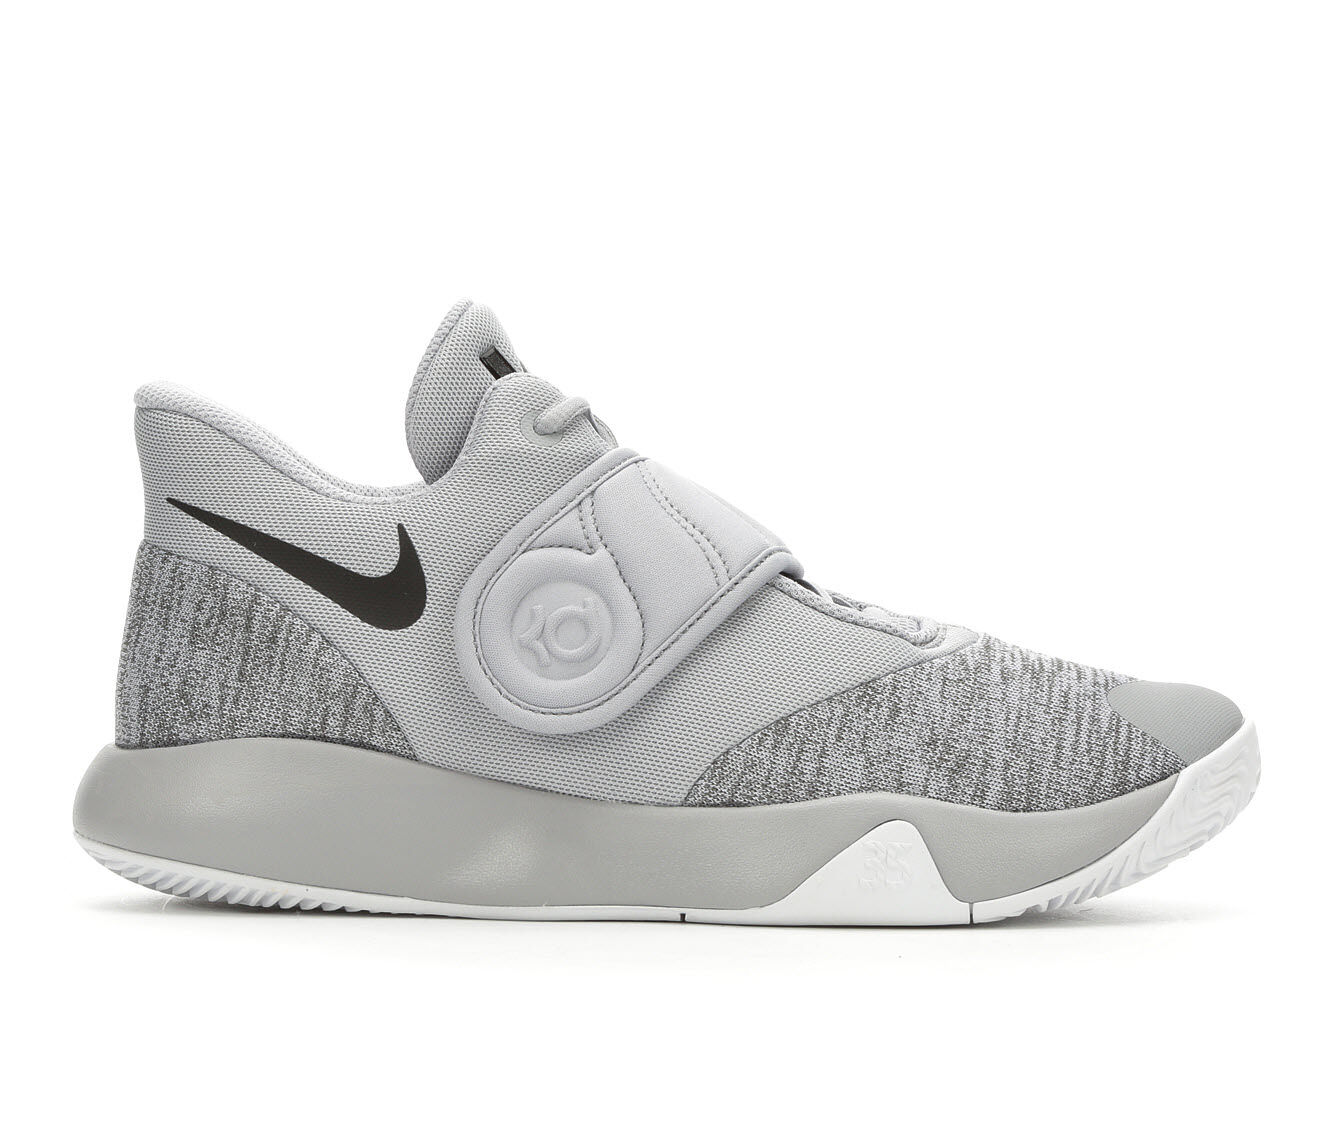 Various Sizes Men's Nike KD Trey 5 VI High Top Basketball Shoes Gry/Blk/Wht